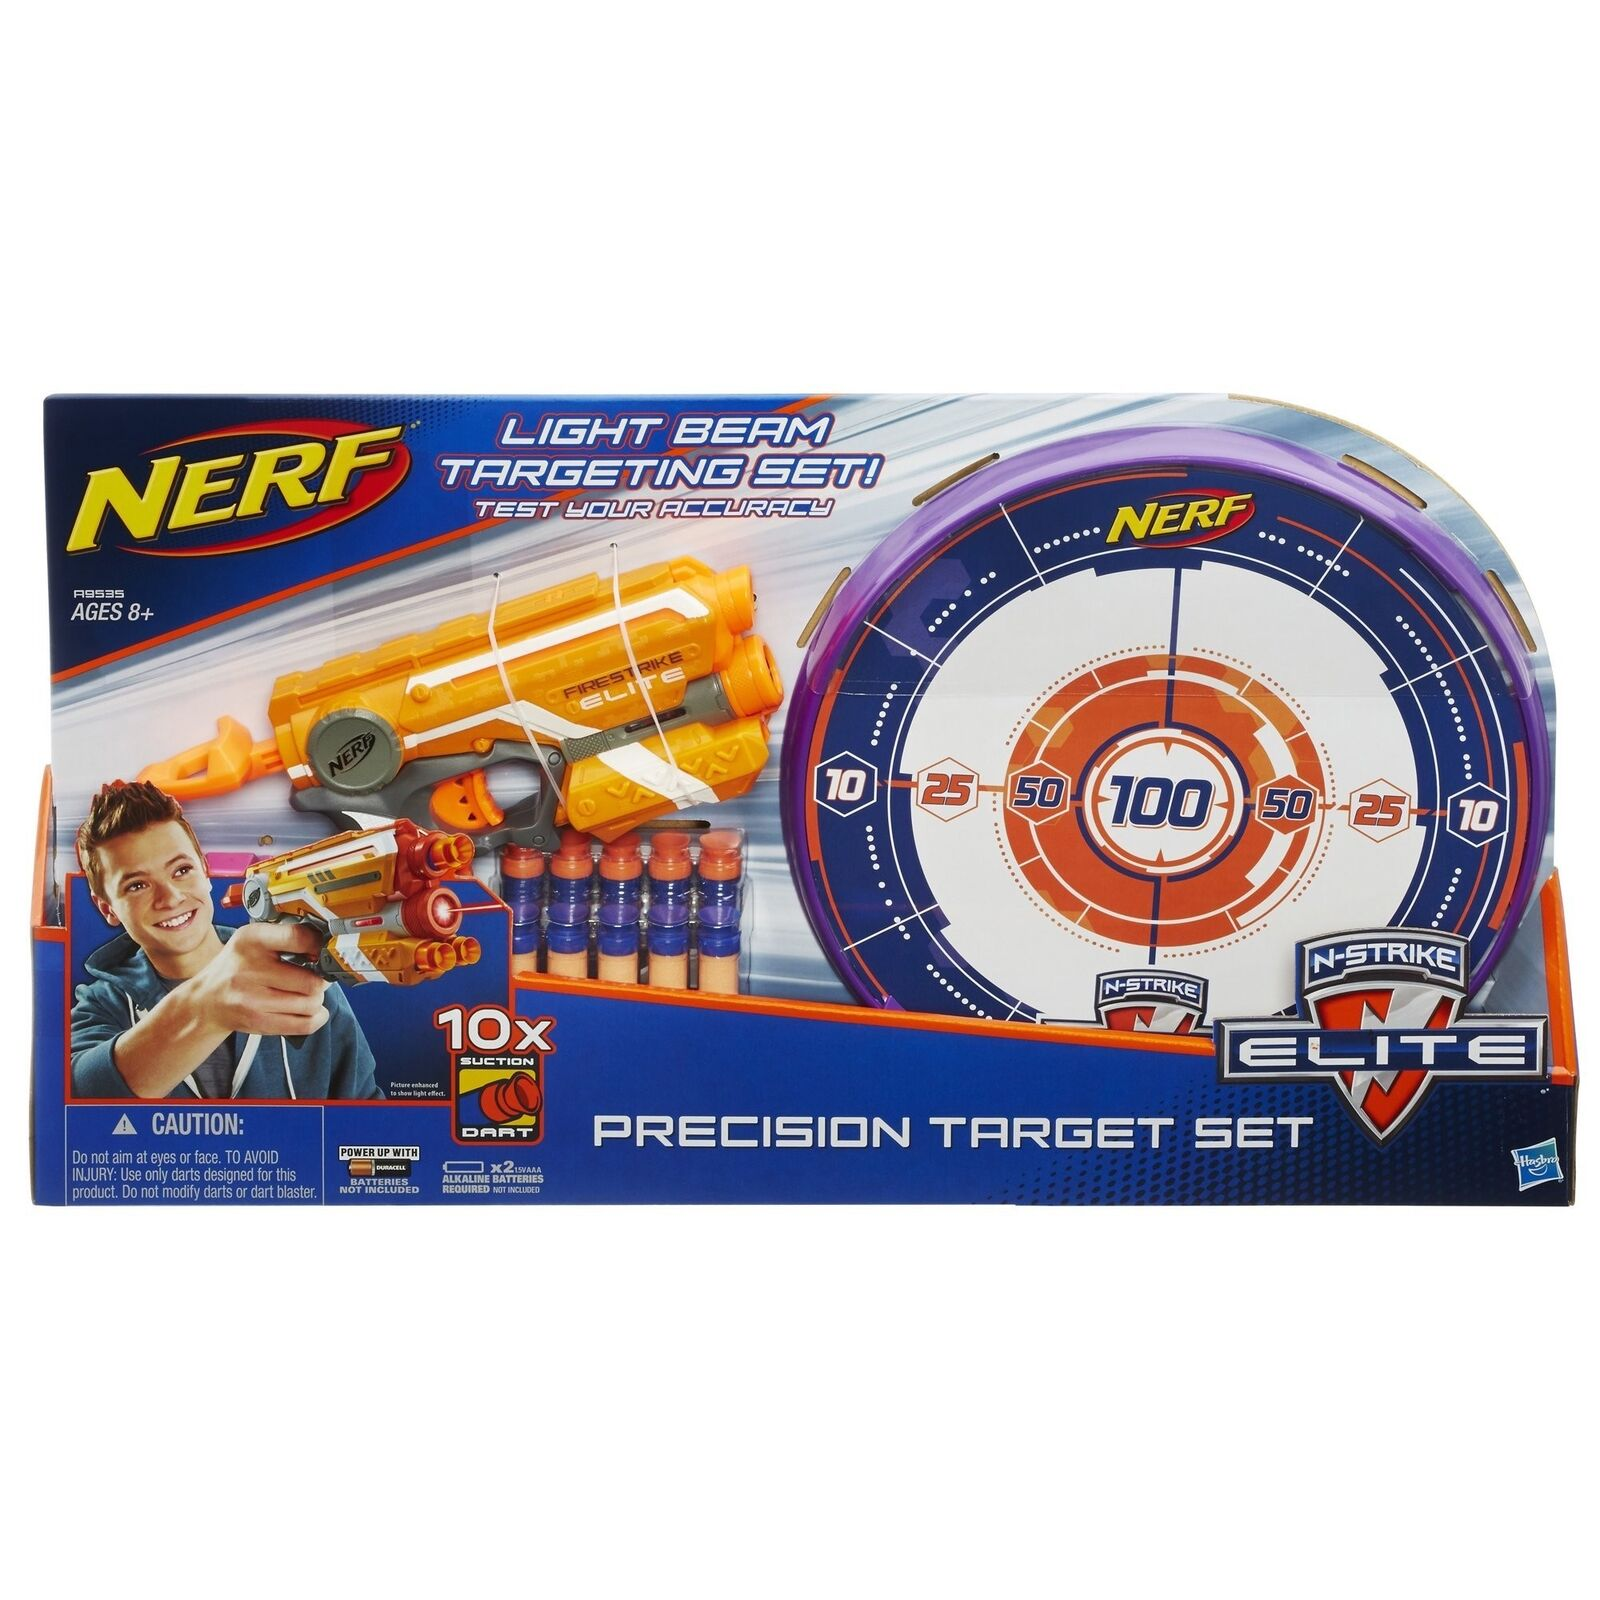 Nerf N-Strike Elite Precision Target Set - colors colors colors Vary 01dee5